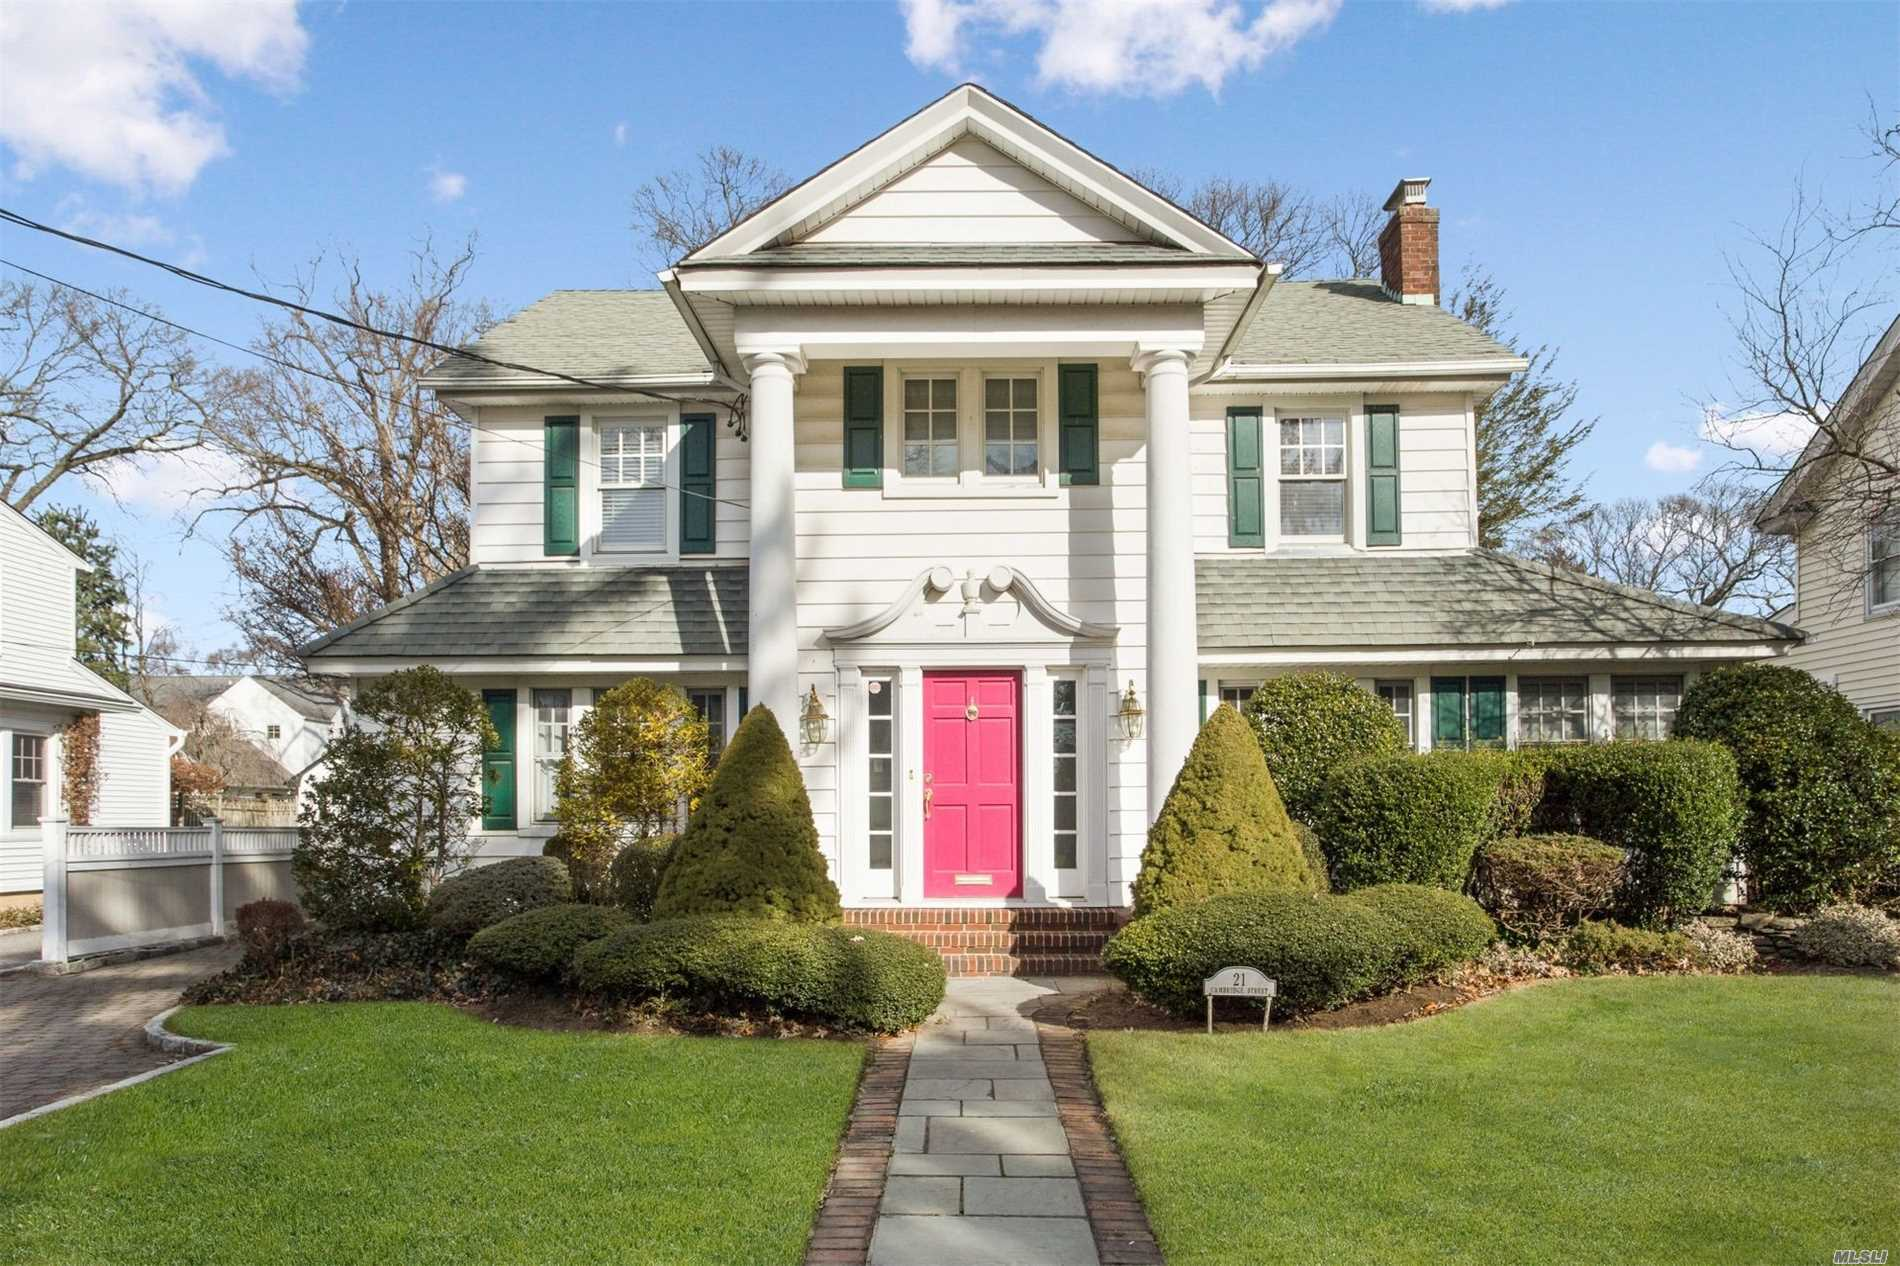 21 Cambridge St Rockville Centre, NY 11570